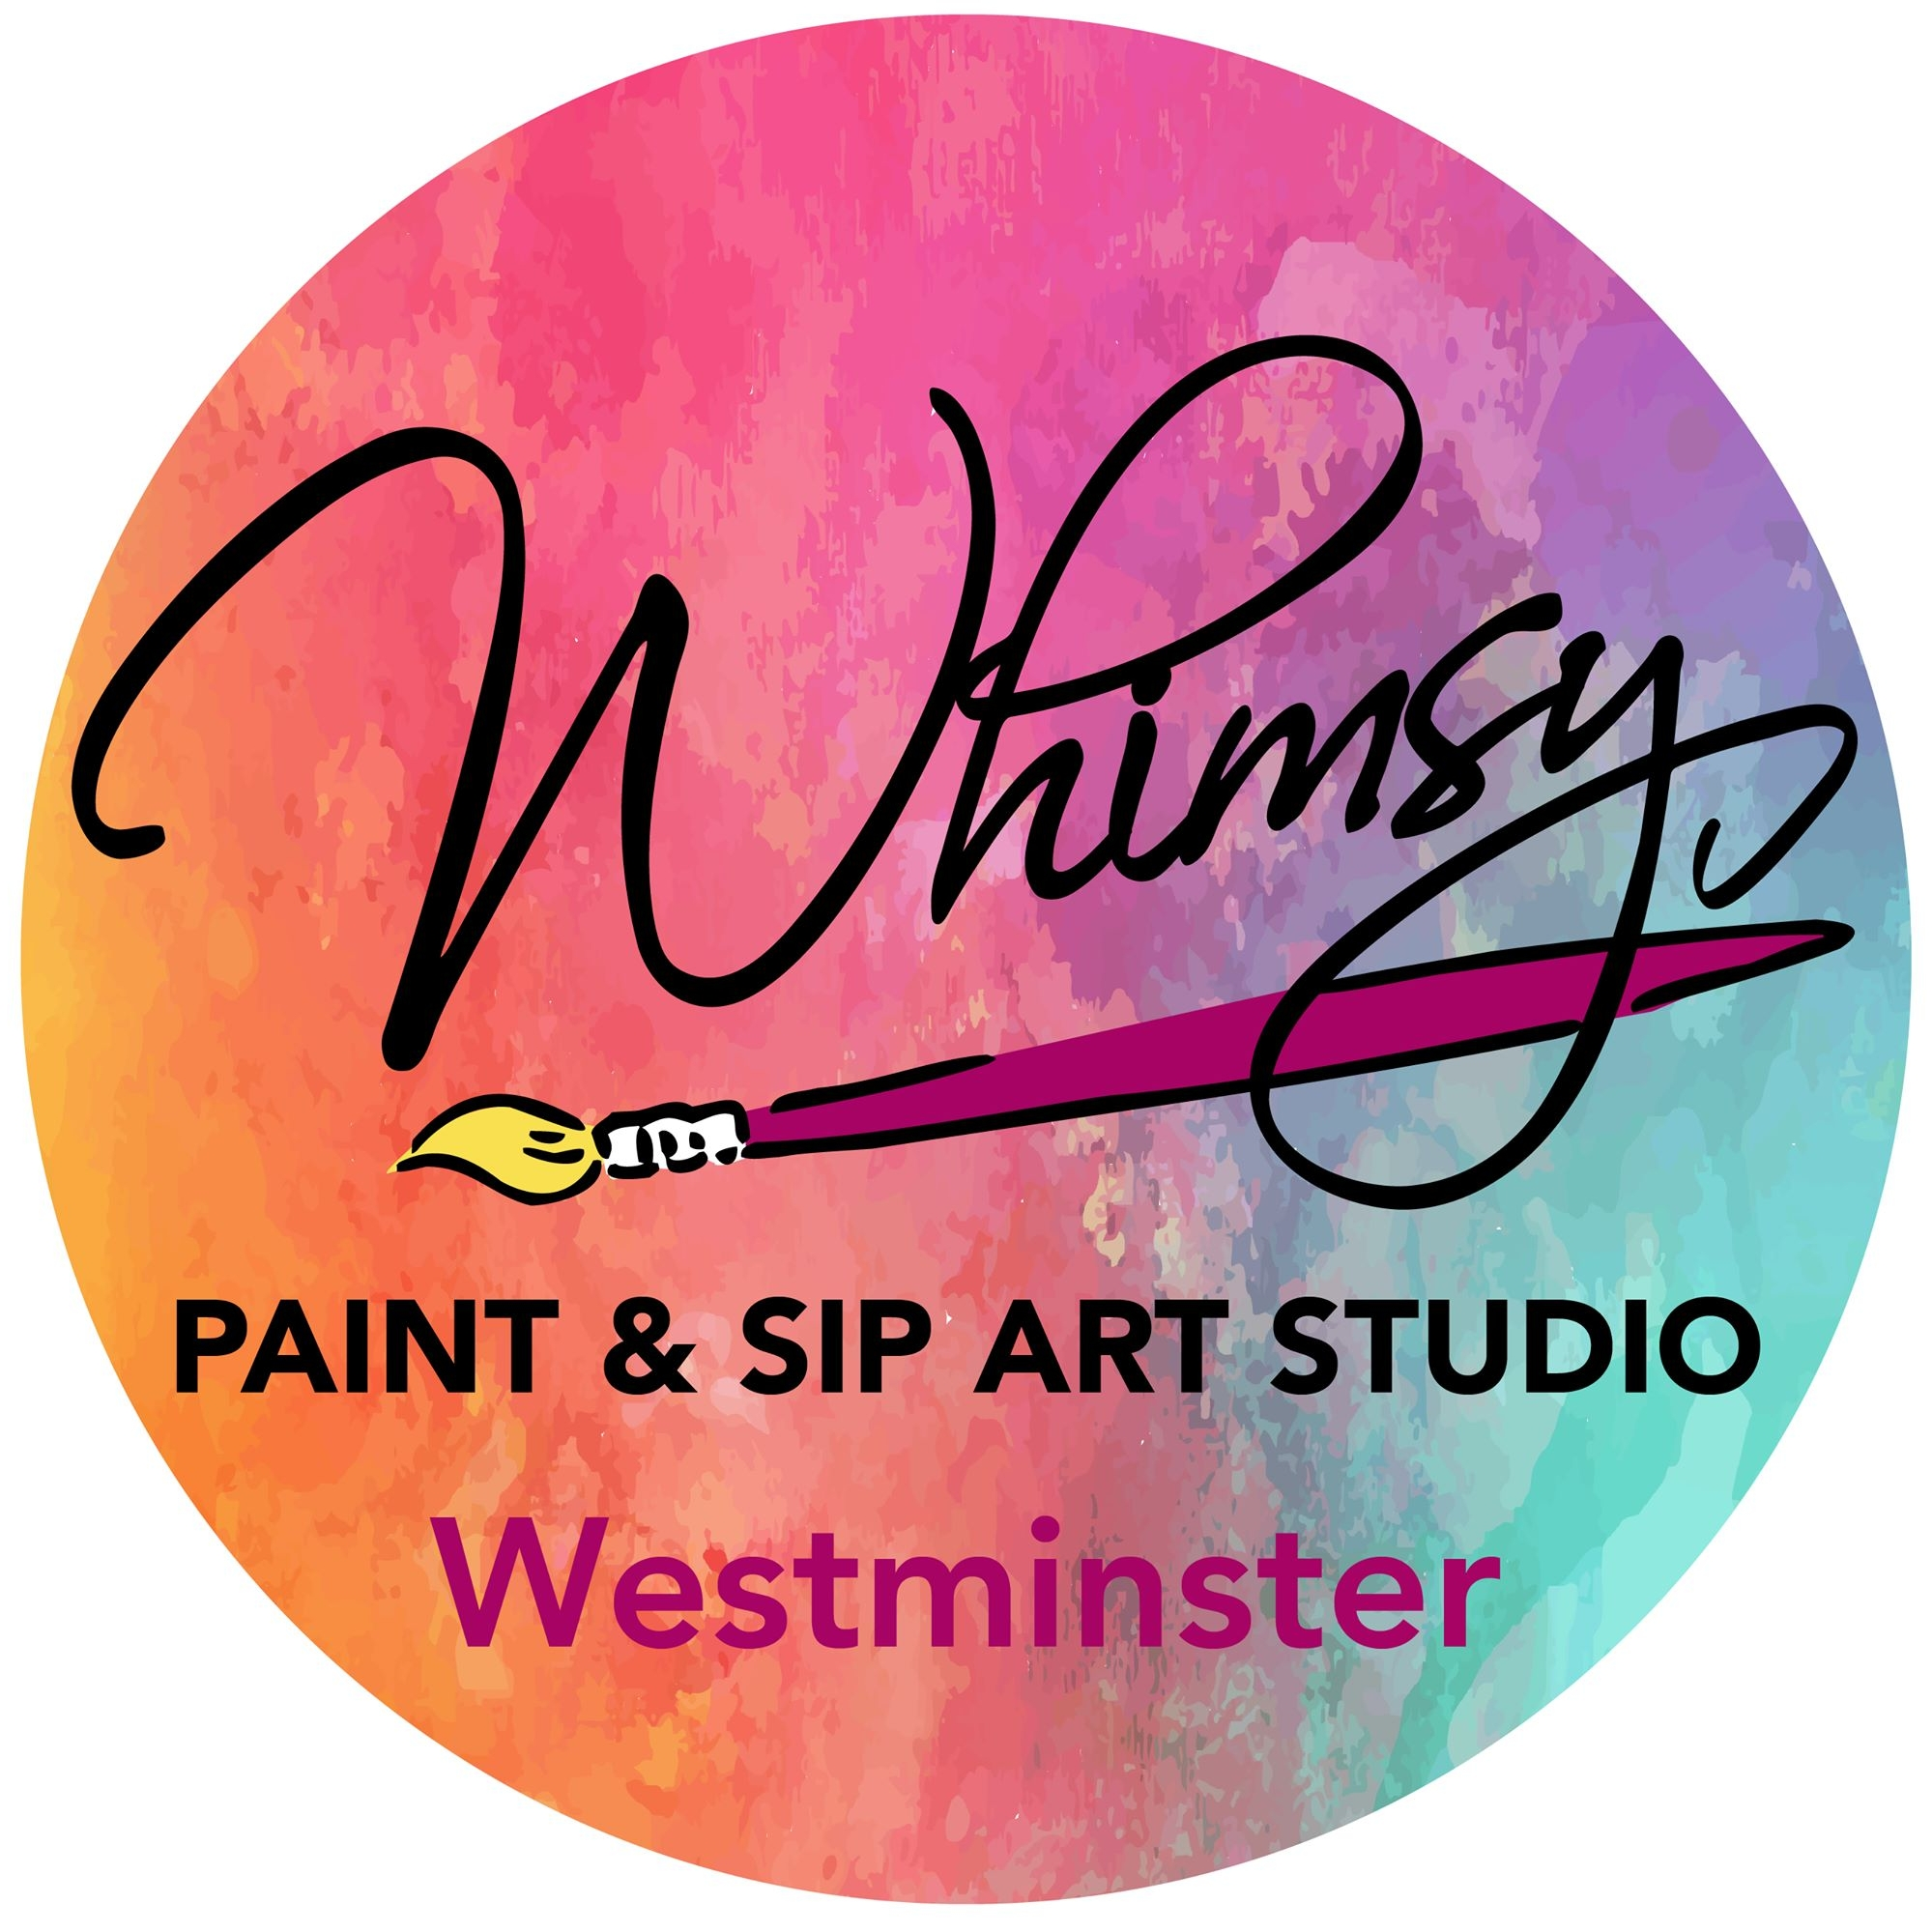 Company logo of Whimsy Paint and Sip Art Studio